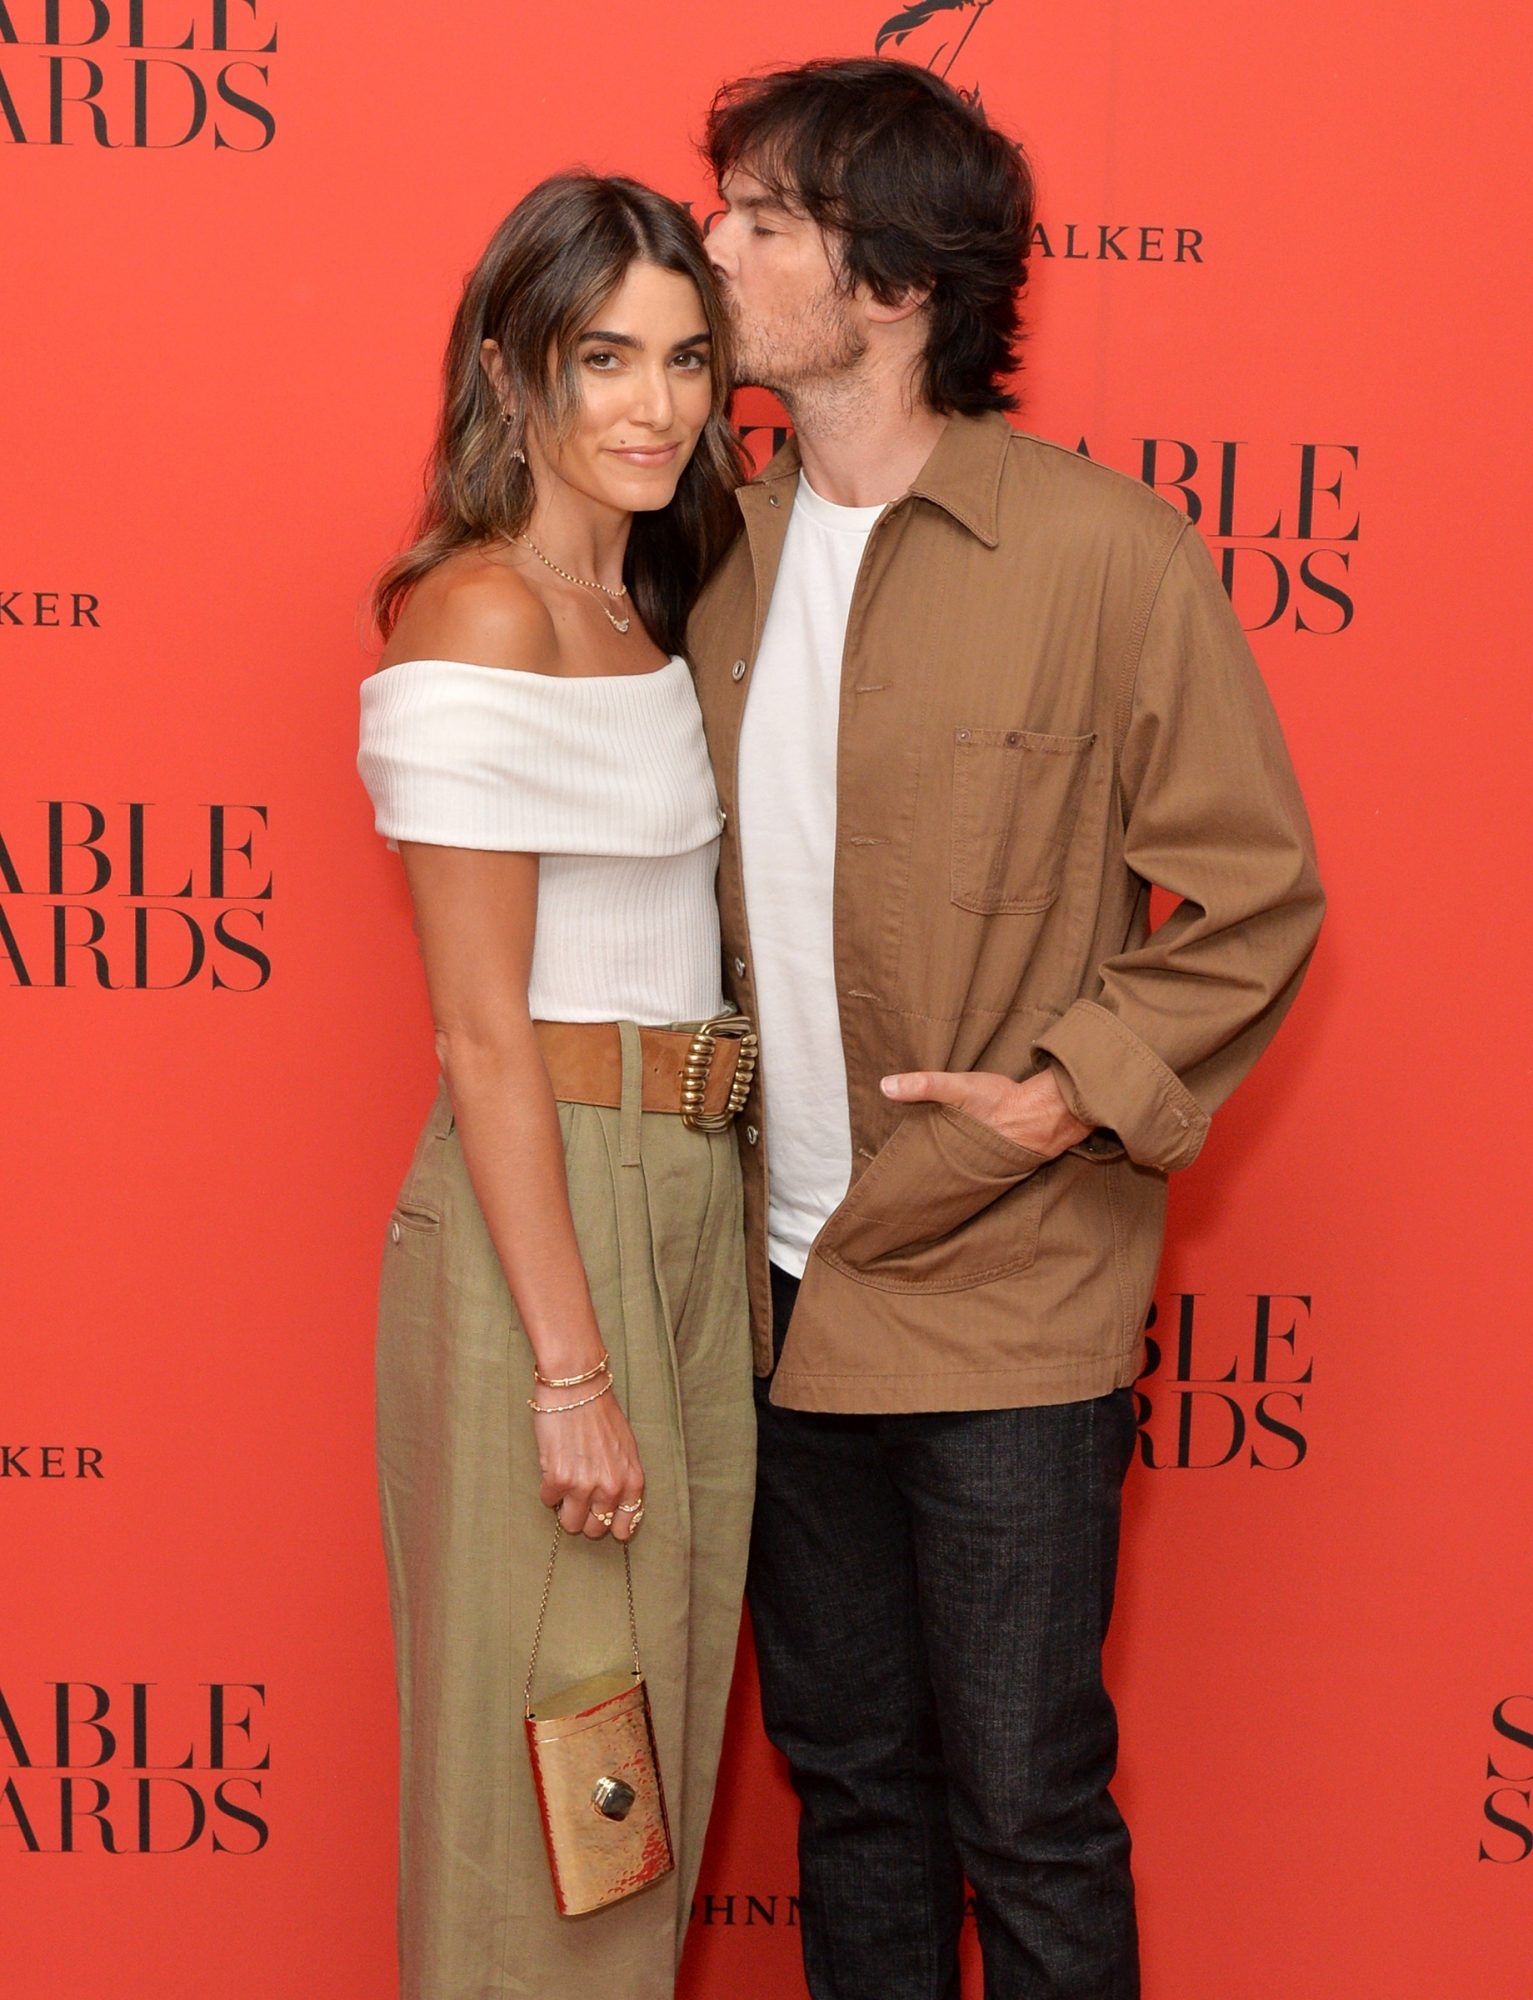 Nikki Reed and Ian Somerhalder attend Maison de Mode's Sustainable Style Awards at The West Hollywood EDITION on June 26, 2021 in West Hollywood